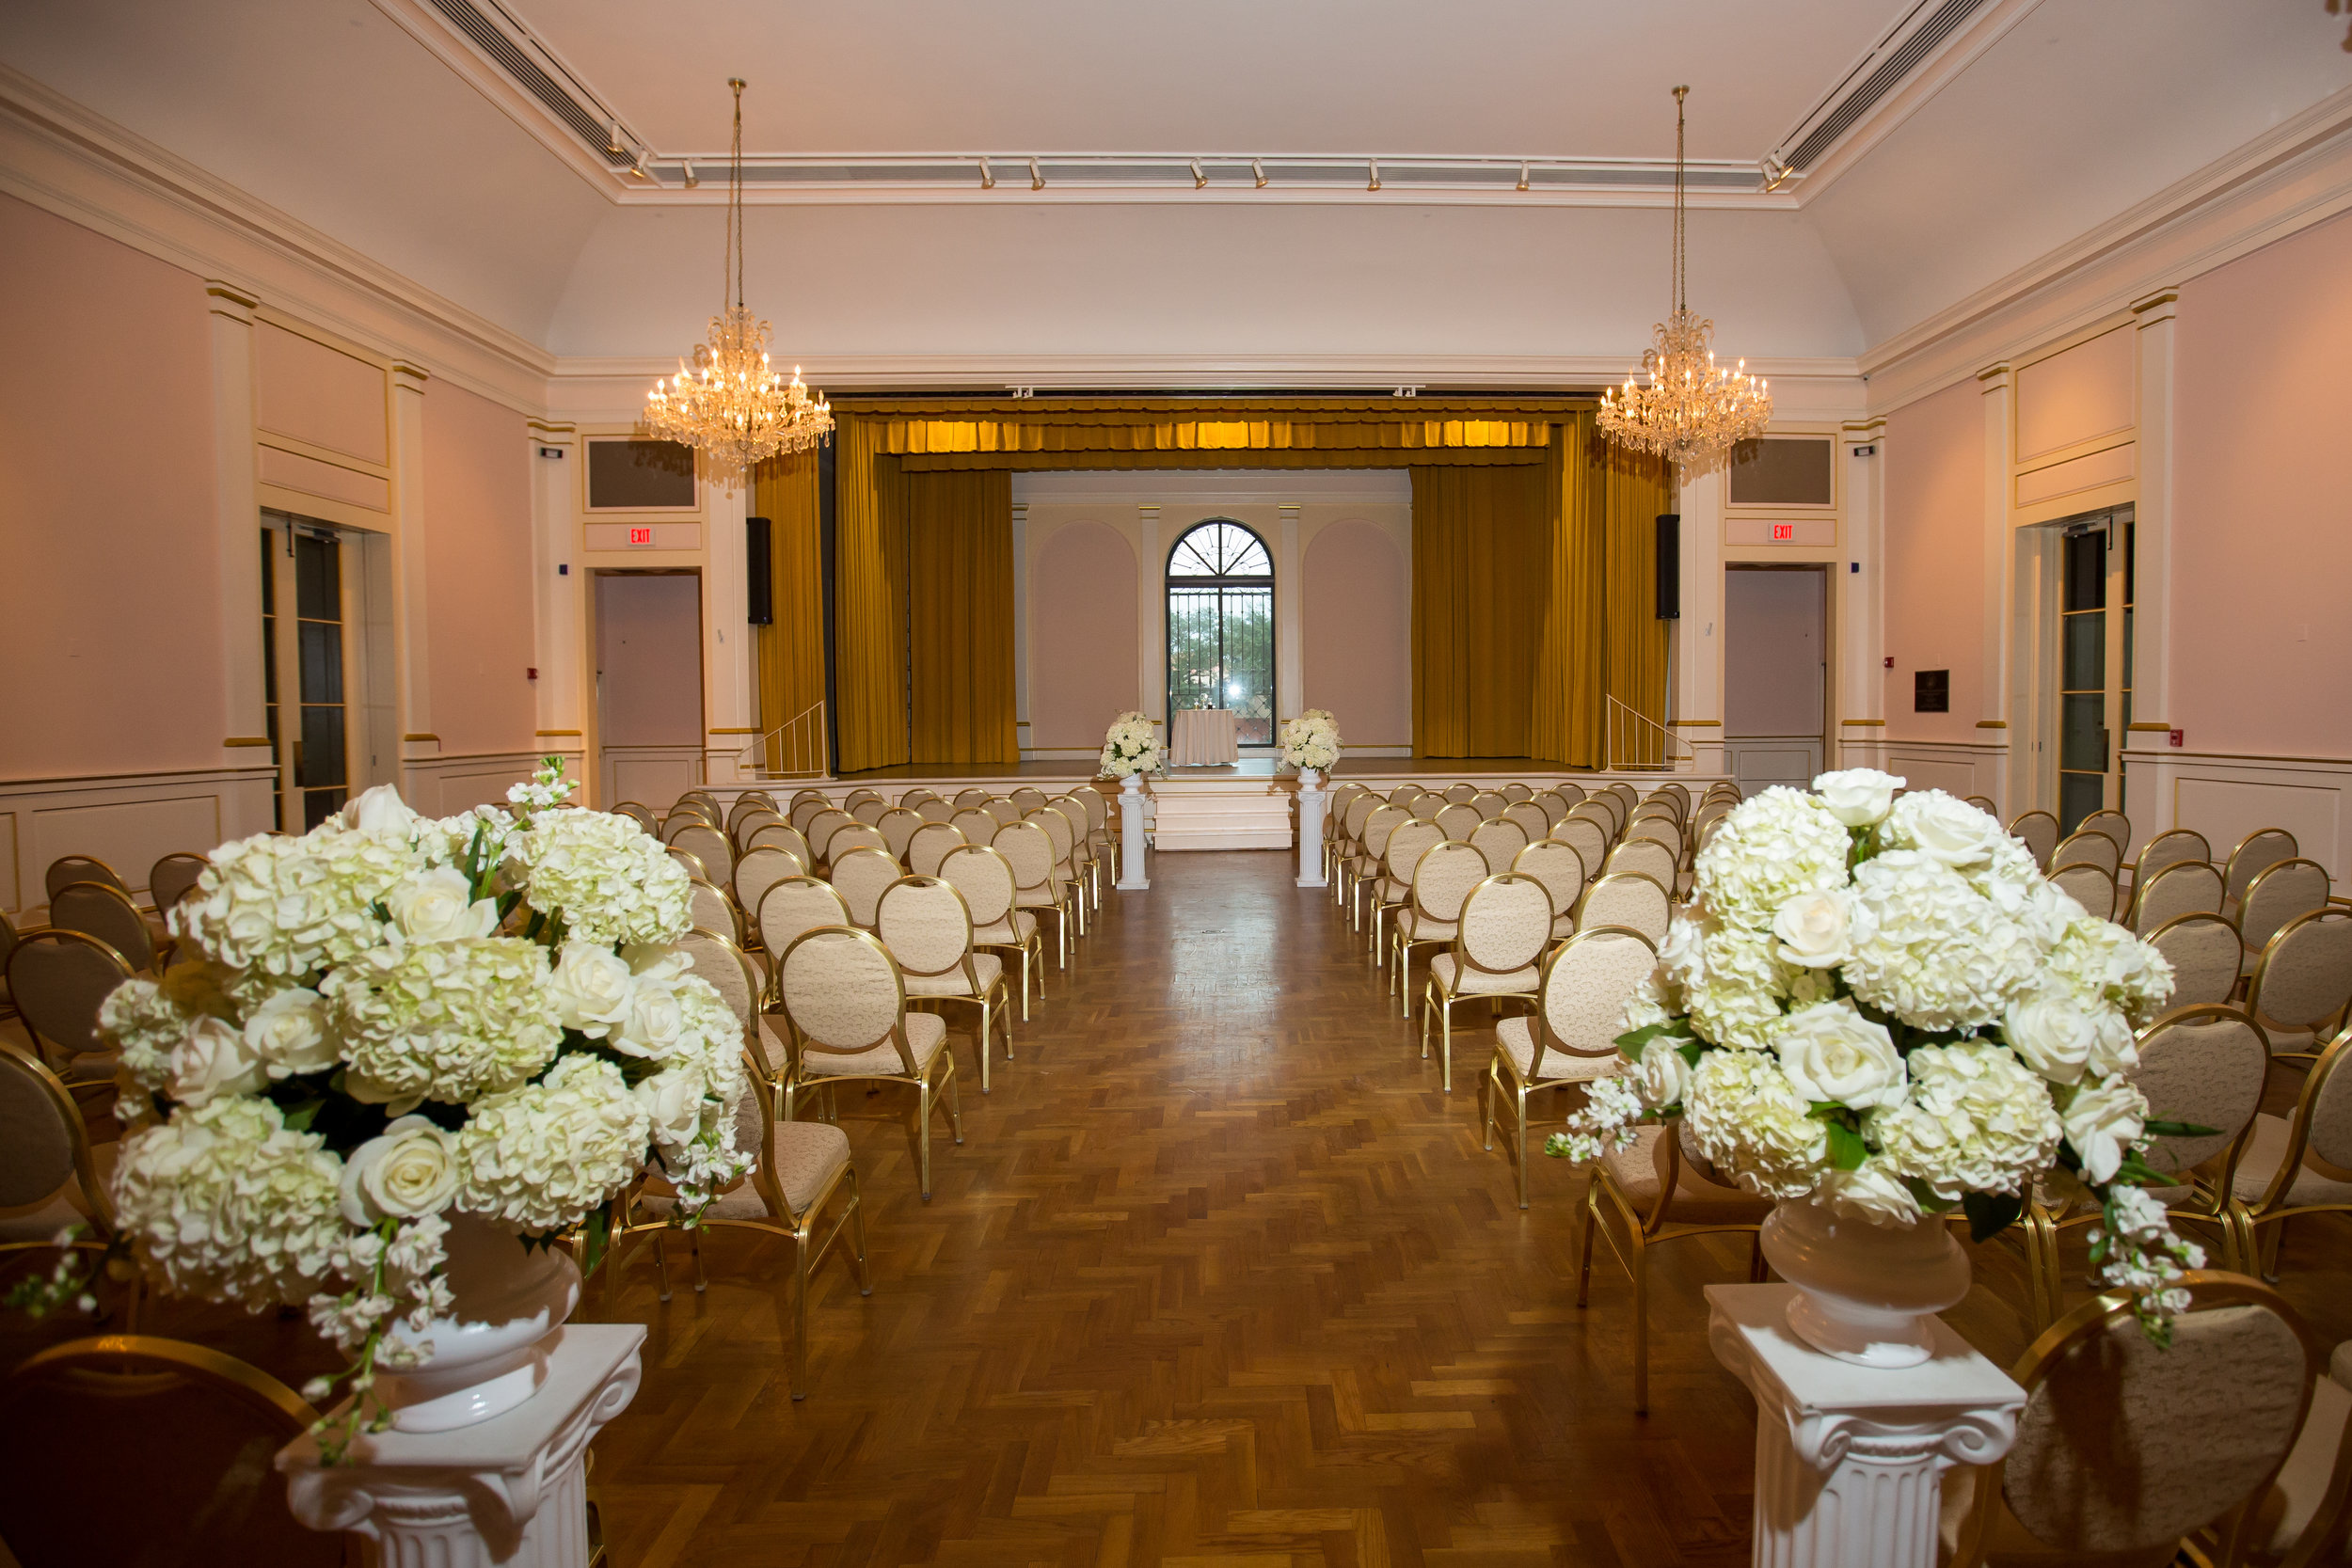 The stately ballroom ceremony provided unobstructed views of the couple on stage.